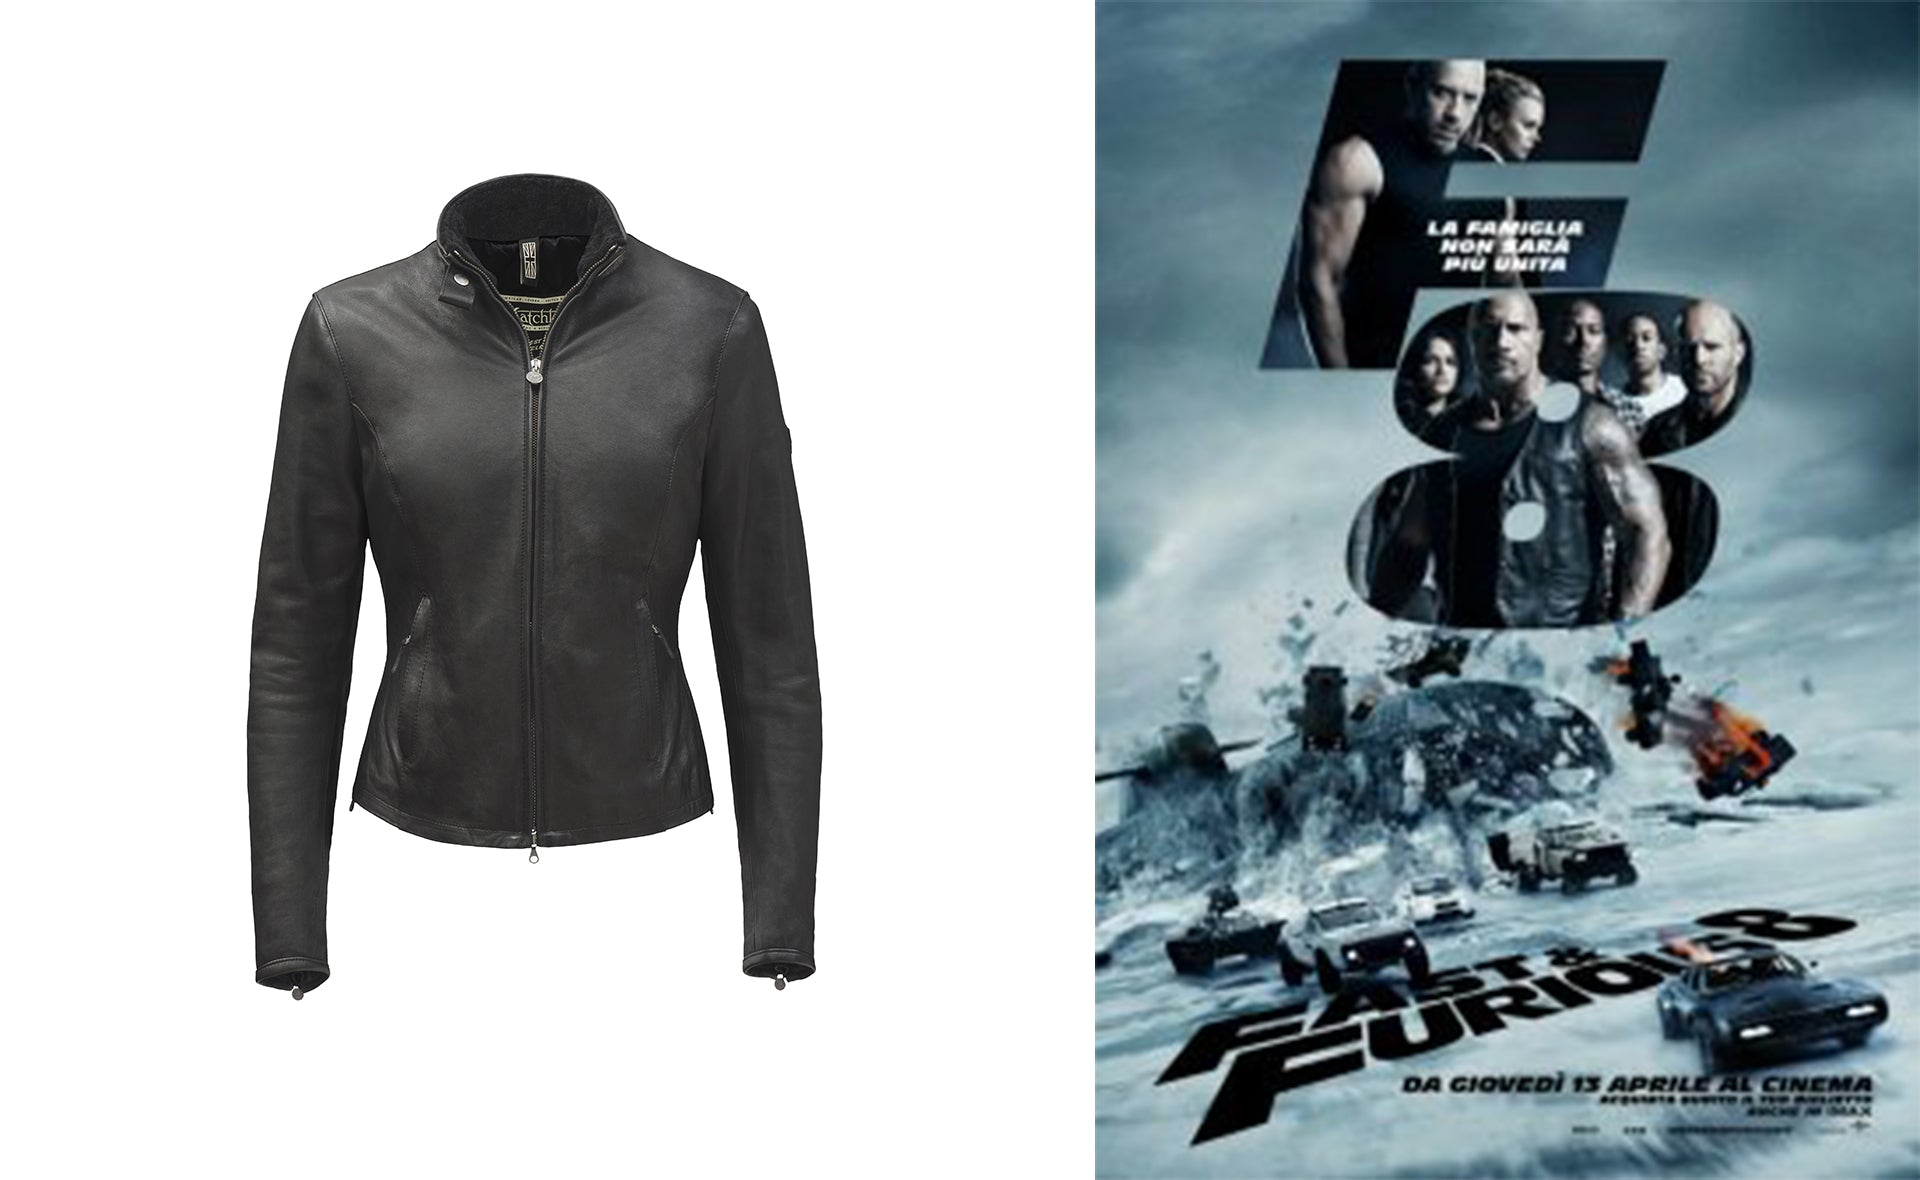 Heroes Limited Edition Matchless London The Innovator Since 1899 Jaket Hoodie Spiderman Black Discover Osborne Blouson Lady Worn By Michelle Rodriguez